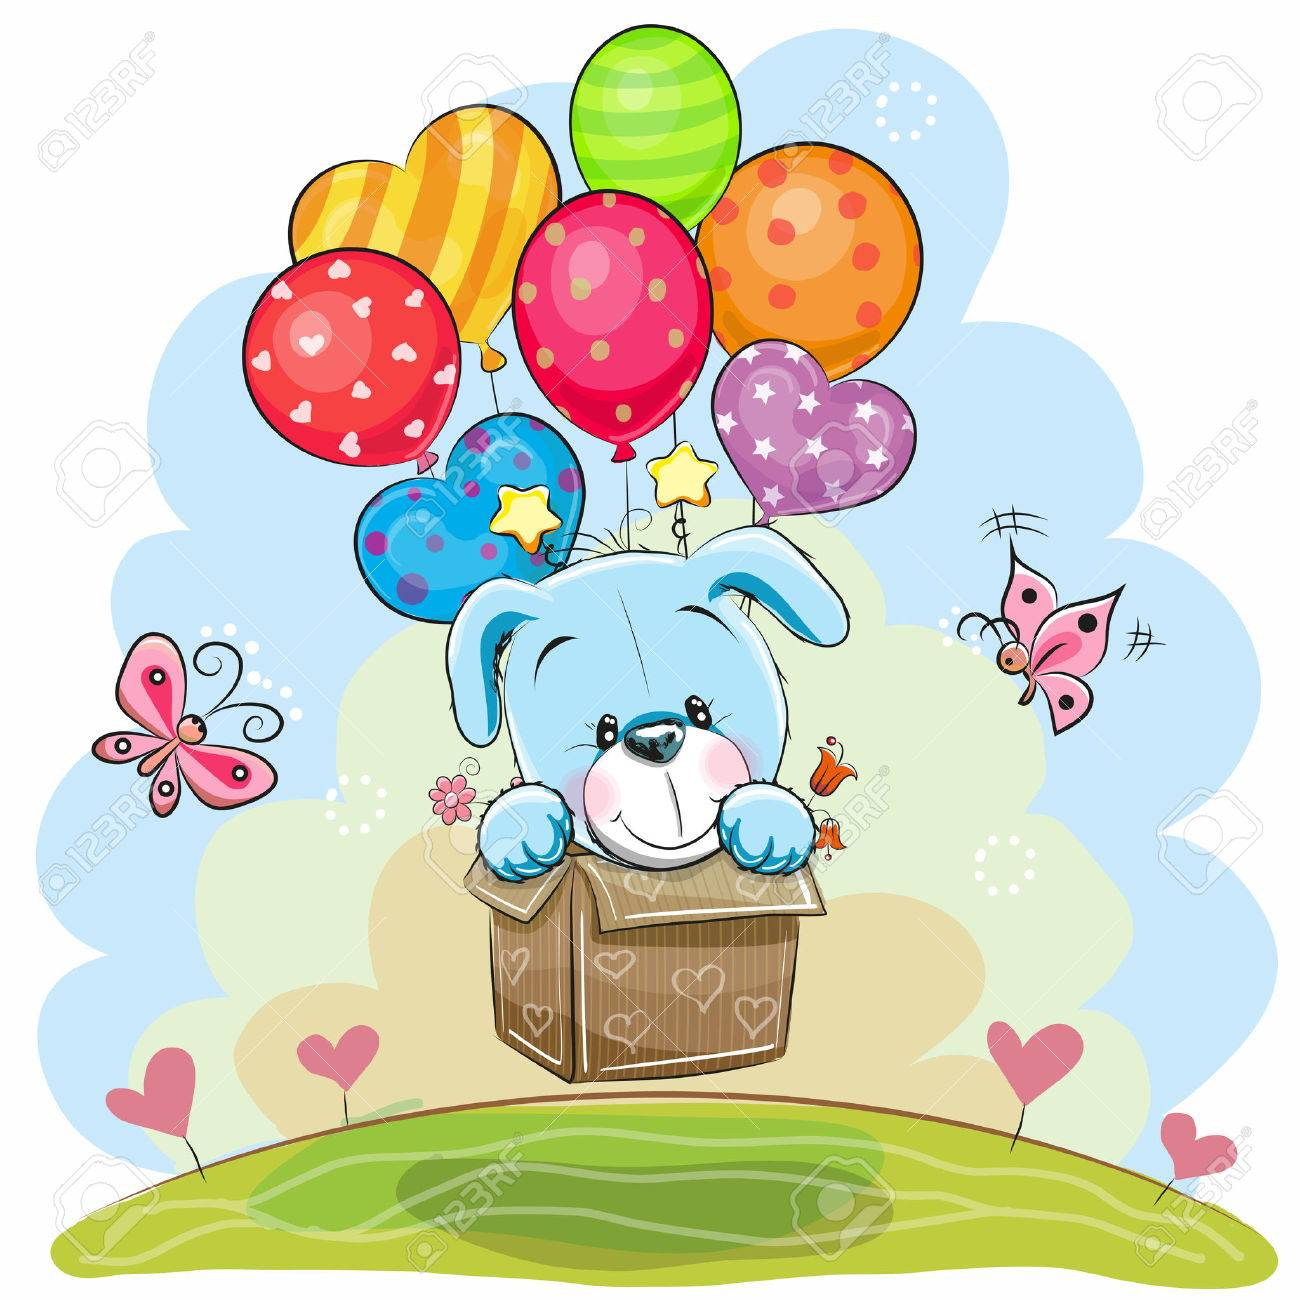 Cute Cartoon Puppy in the box is flying on balloons - 78751351